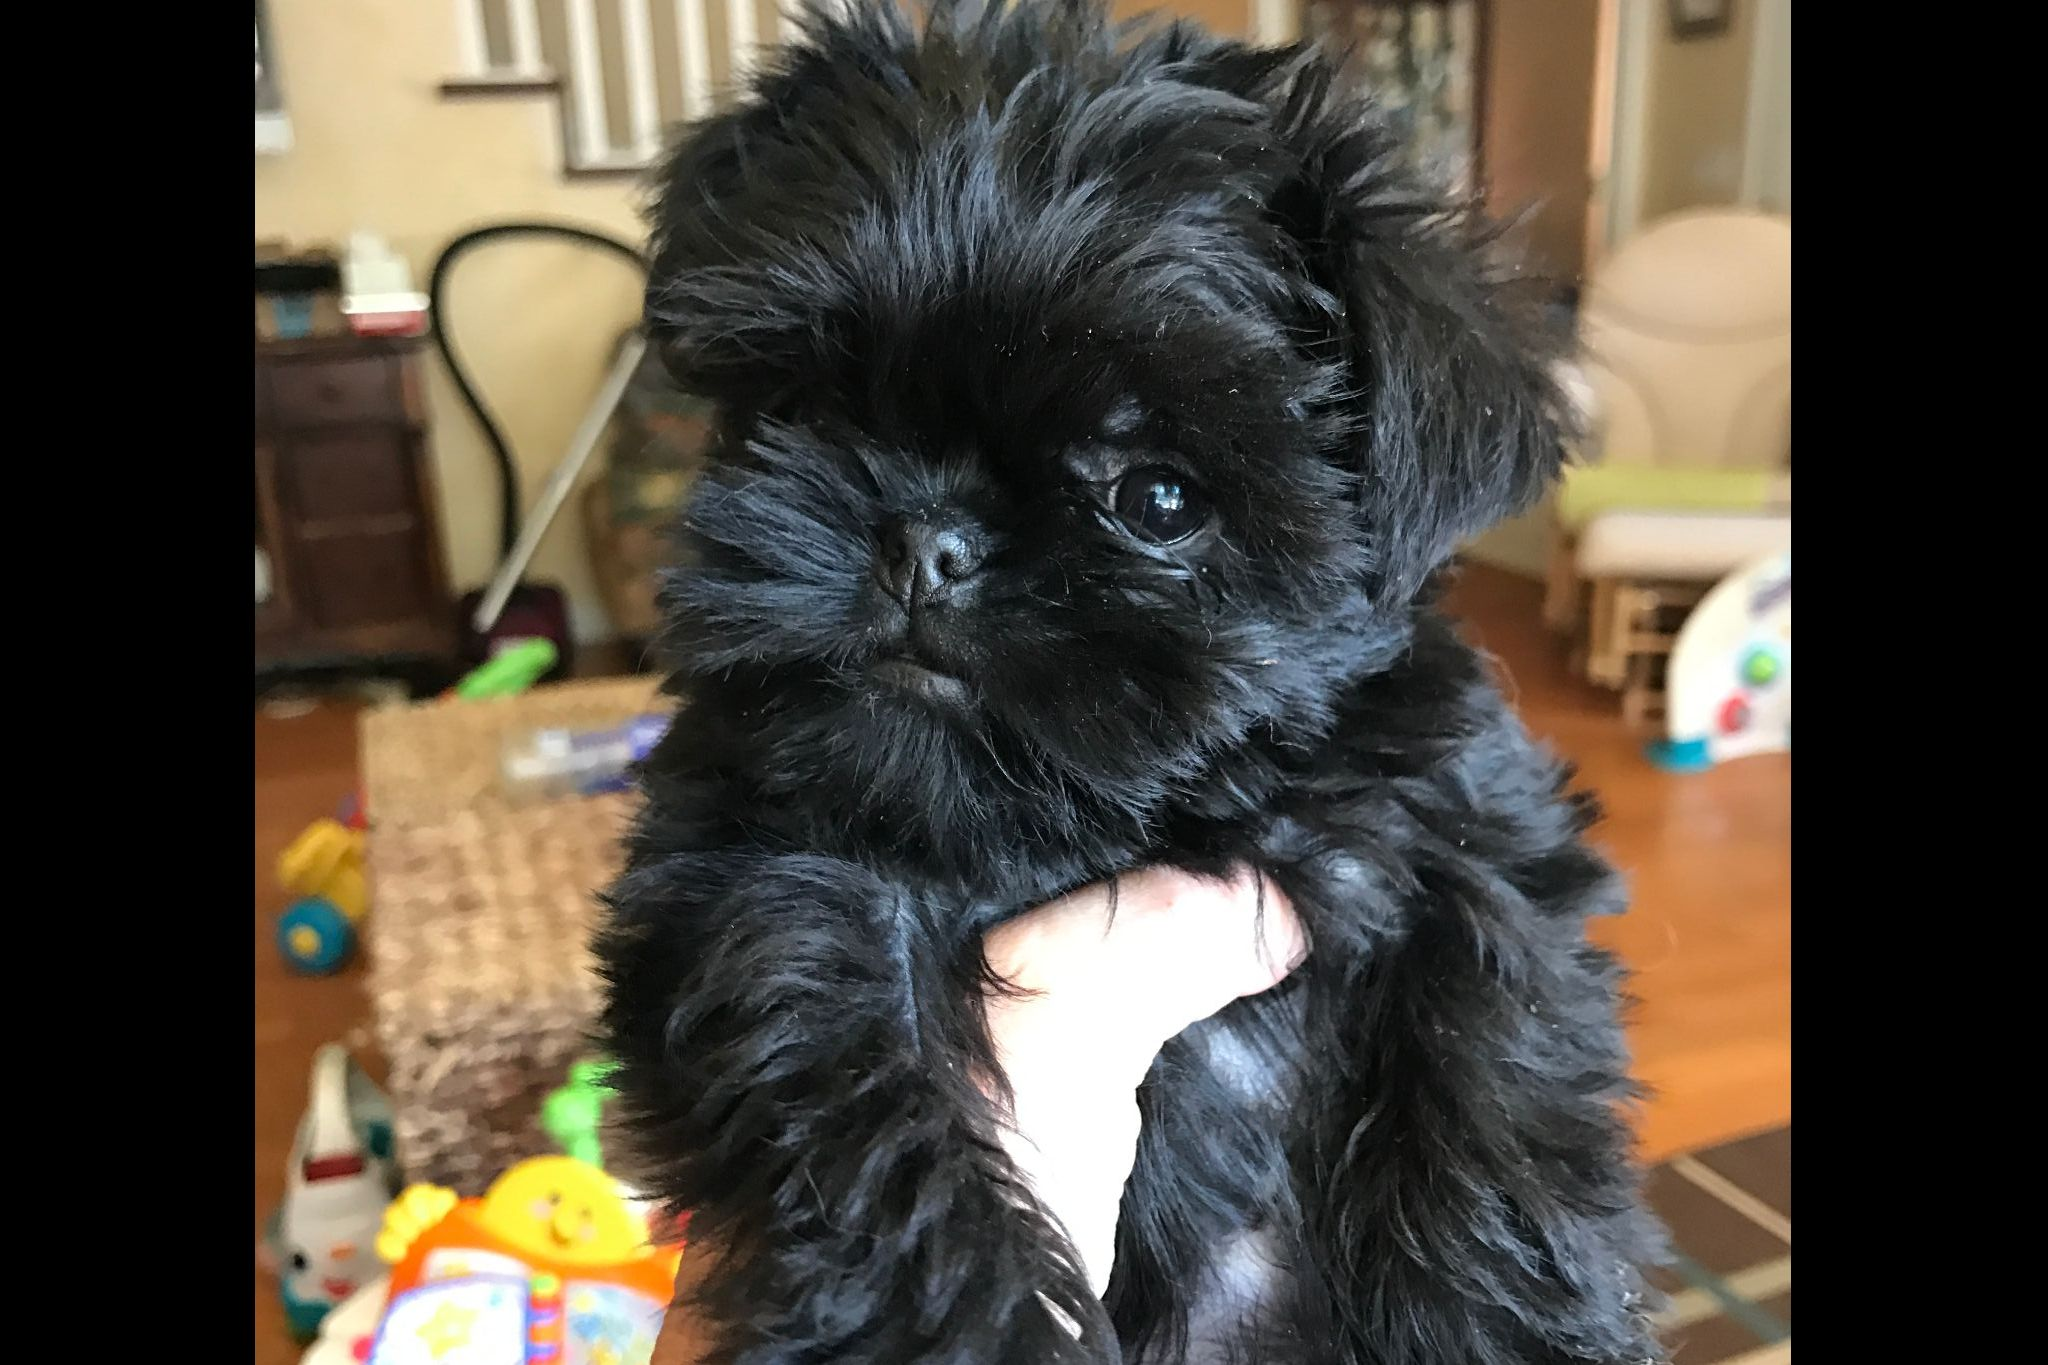 Vickie Ehrlekrona Crisanda Affenpinschers Papillons Has Affenpinscher Puppies For Sale In Billings Mt On Affenpinscher Puppy Puppies For Sale Affenpinscher